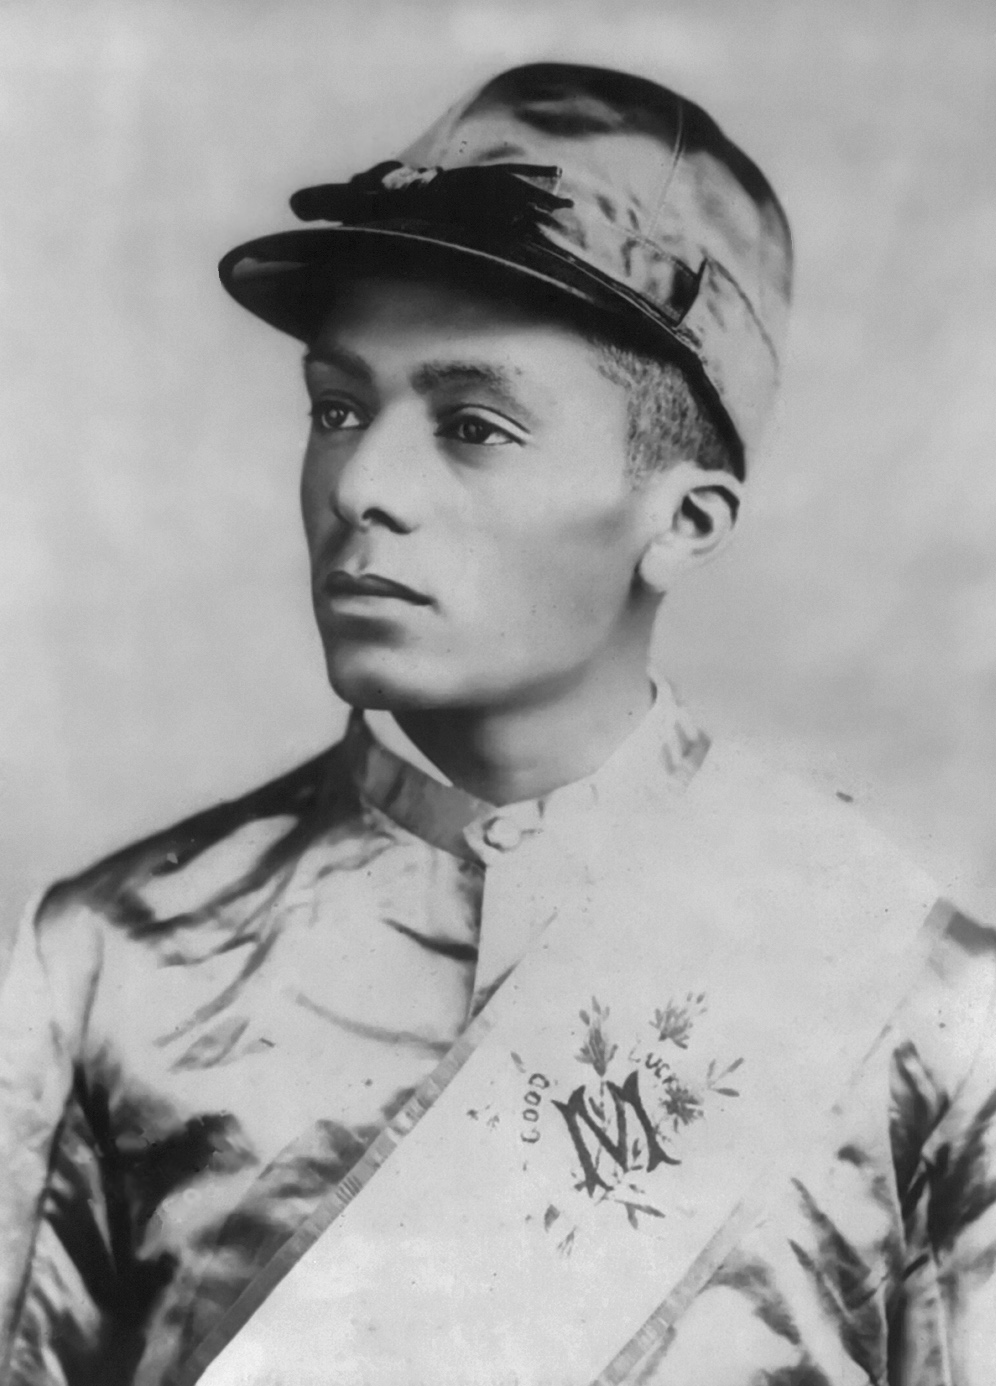 Issac Burns Murphy, Hall of Fame jockey. Public domain.